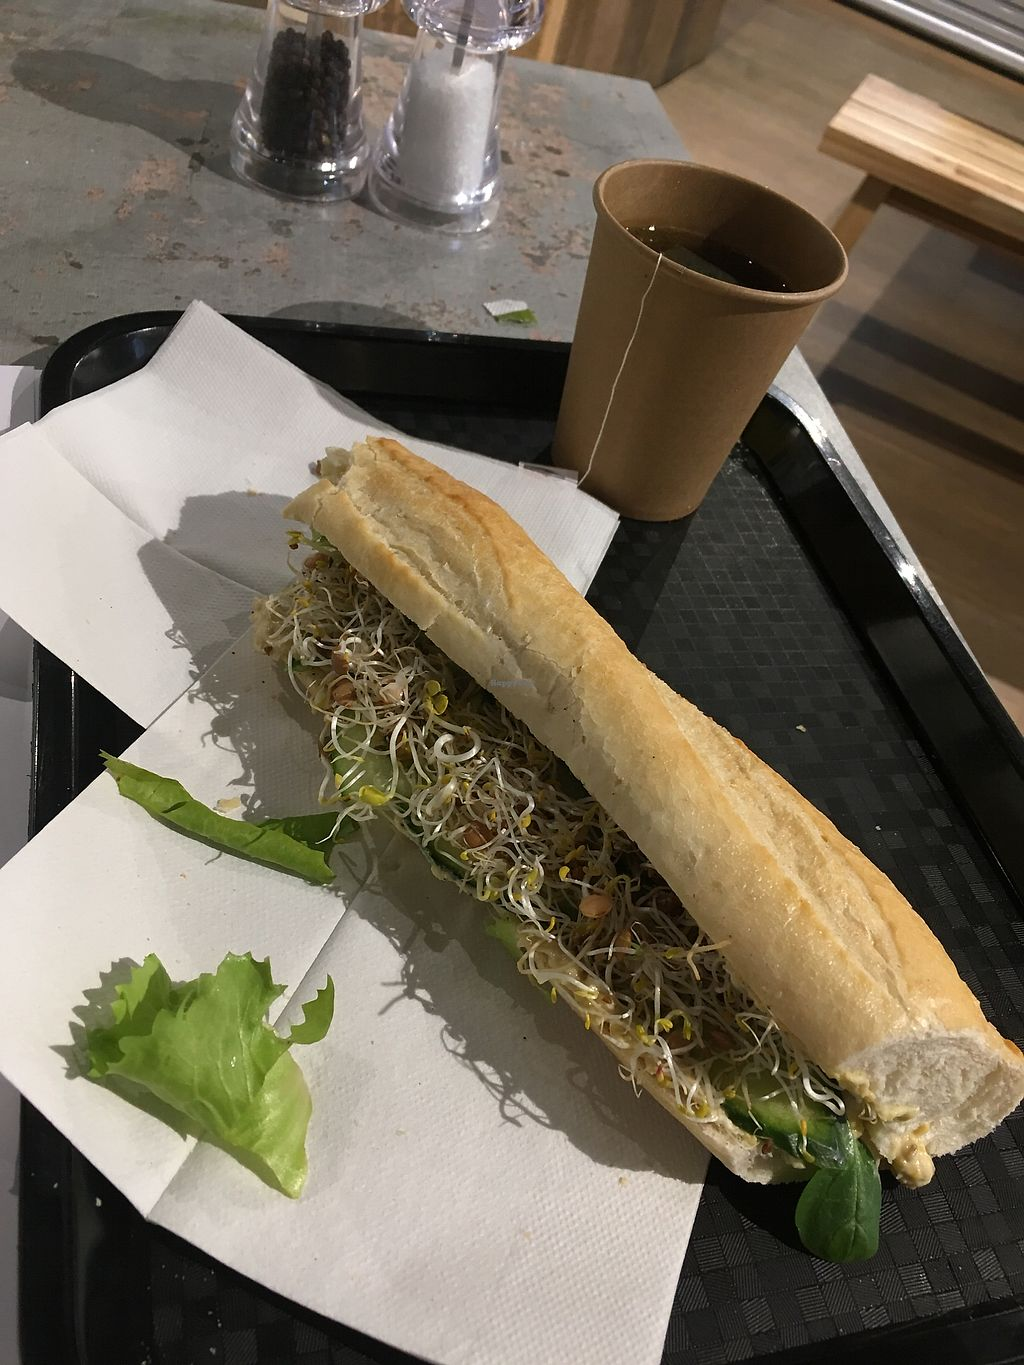 """Photo of Organic Foodbar  by <a href=""""/members/profile/CammK"""">CammK</a> <br/>Hummus sandwich <br/> March 3, 2018  - <a href='/contact/abuse/image/88982/366291'>Report</a>"""